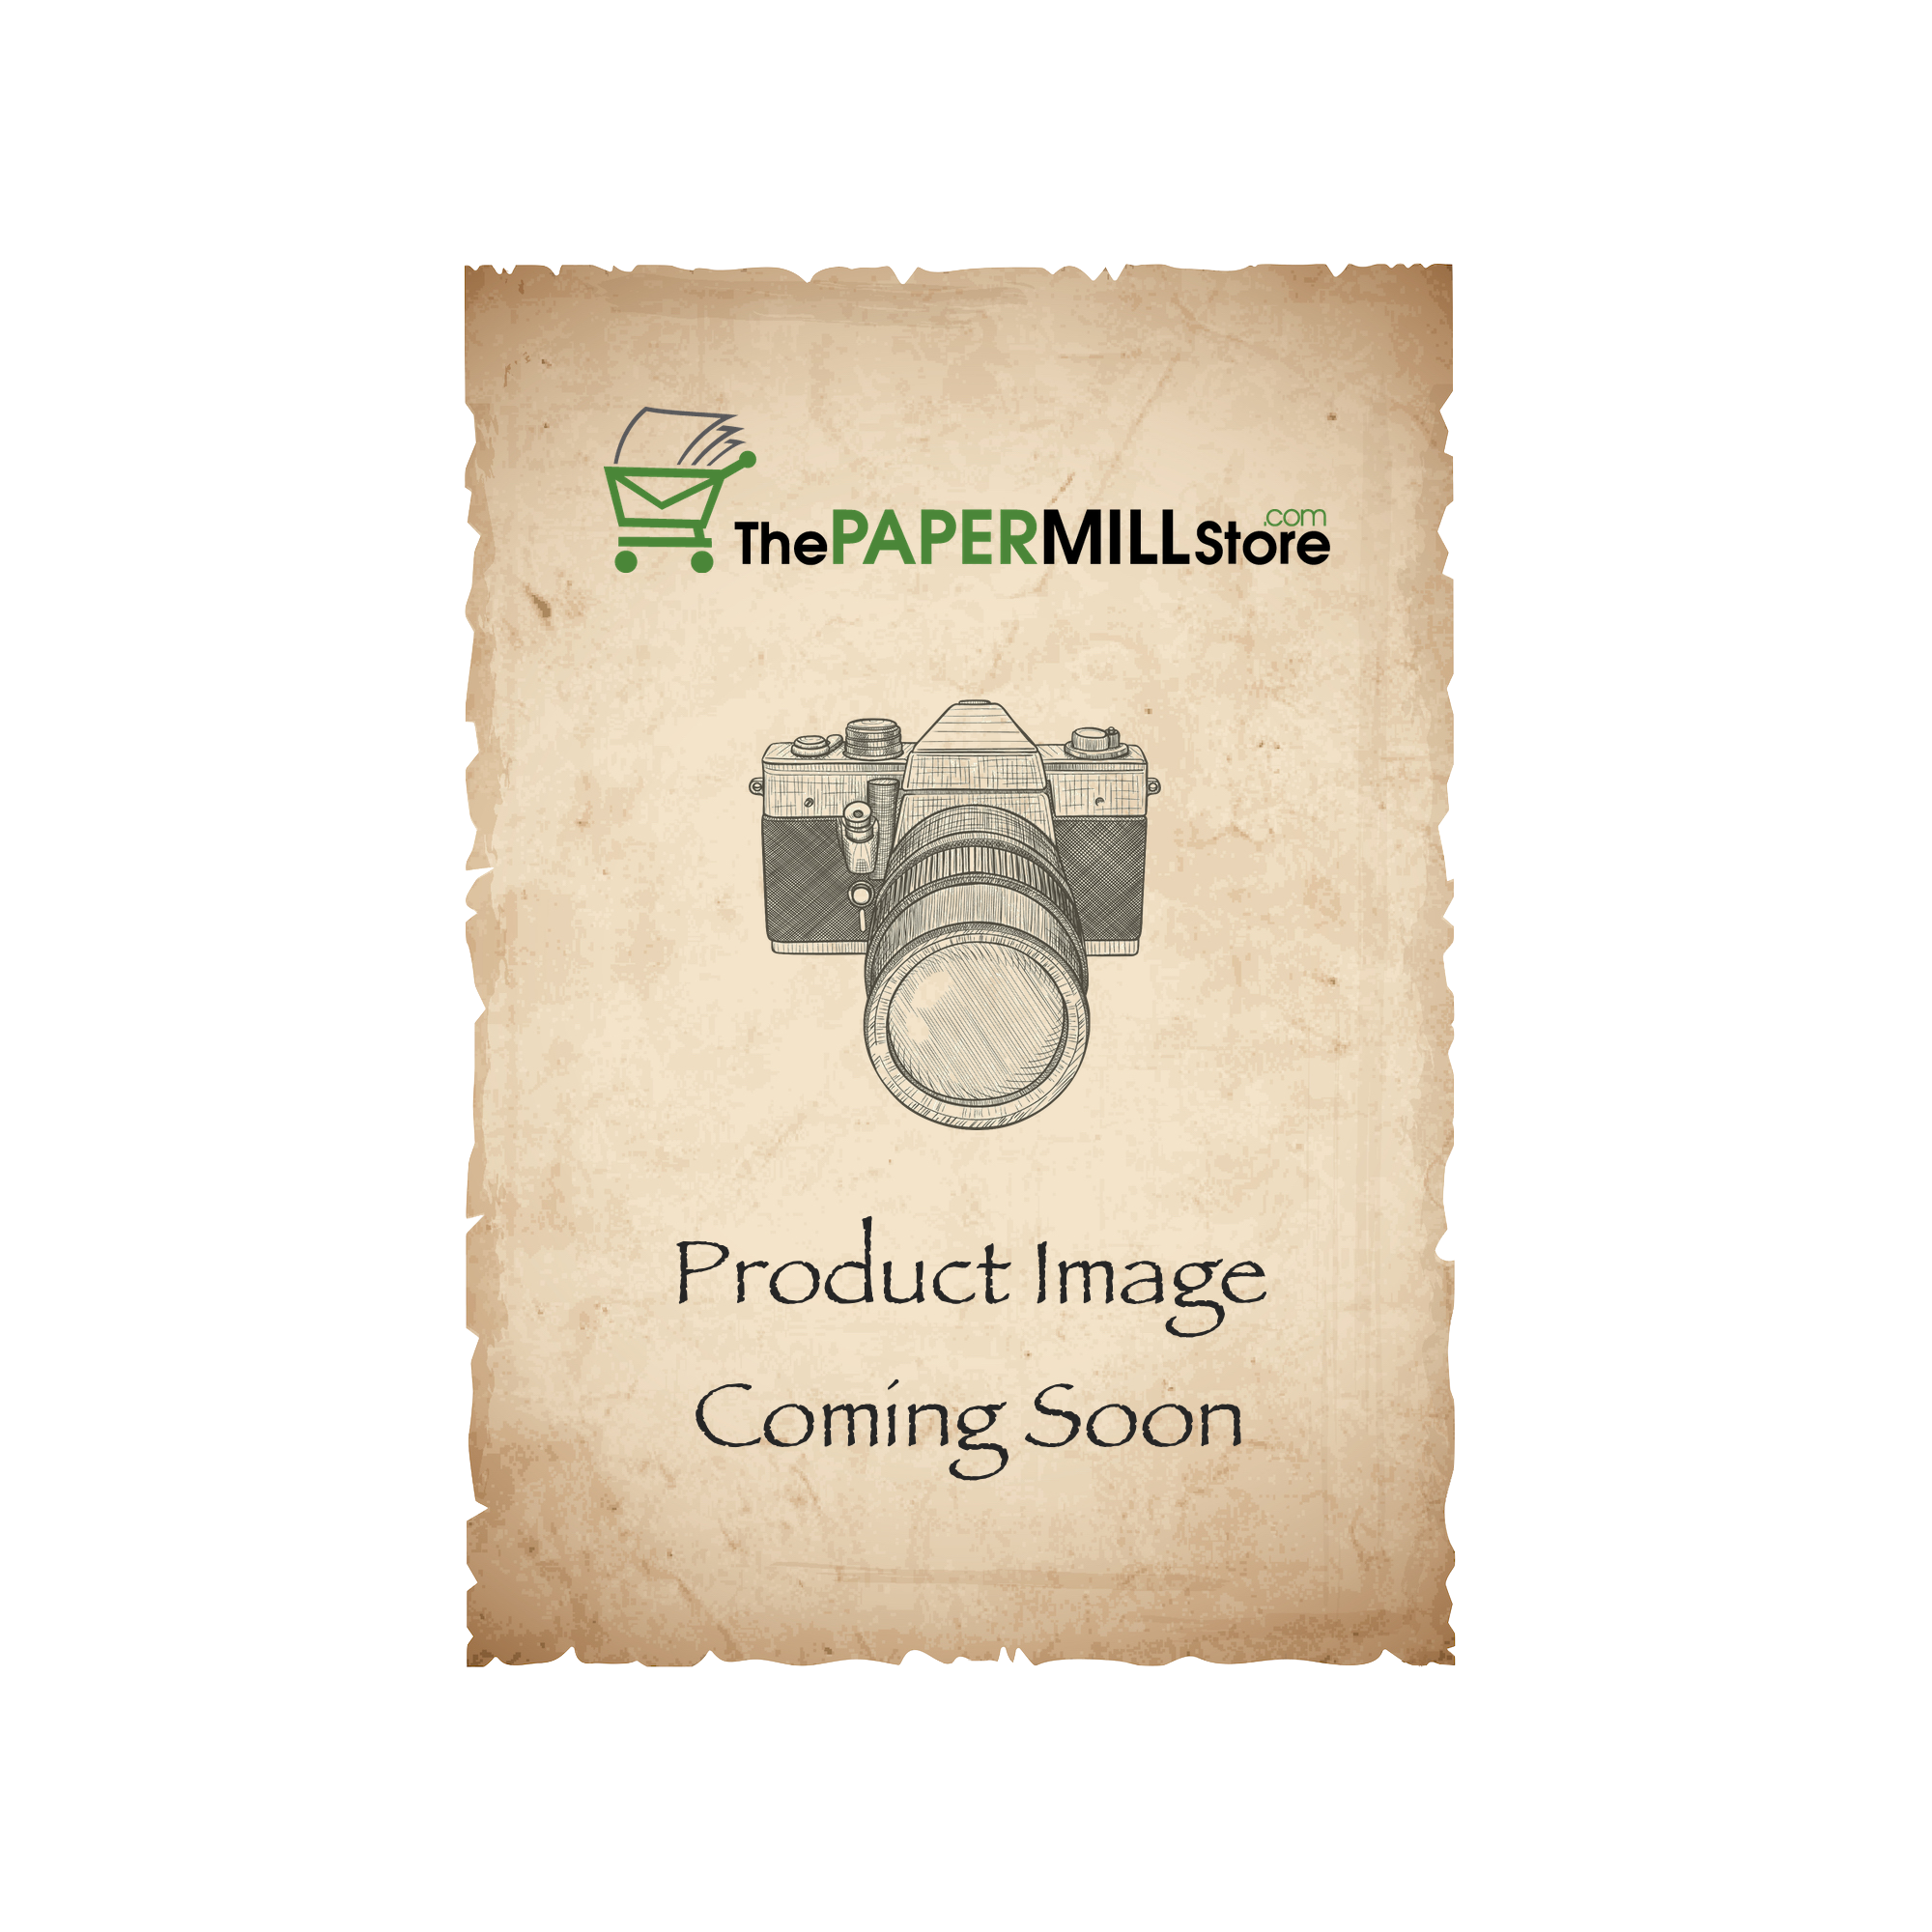 Arturo Blue Folded Cards - Arturo Medium Greeting Folded Landscape (4.53 x 13.39) 96 lb Cover Felt 100 per Box